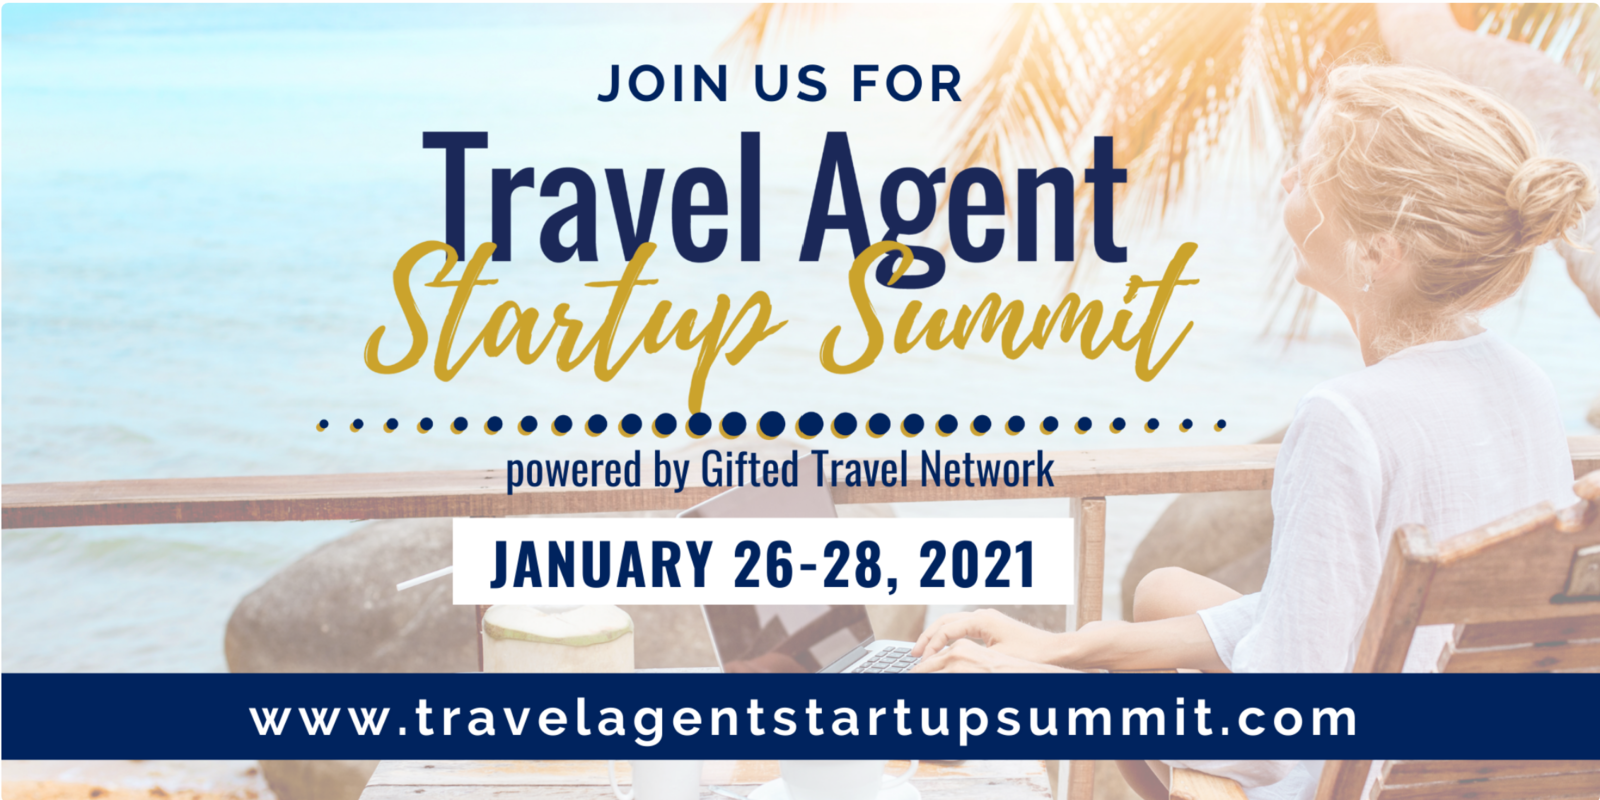 Gifted Travel Network Event